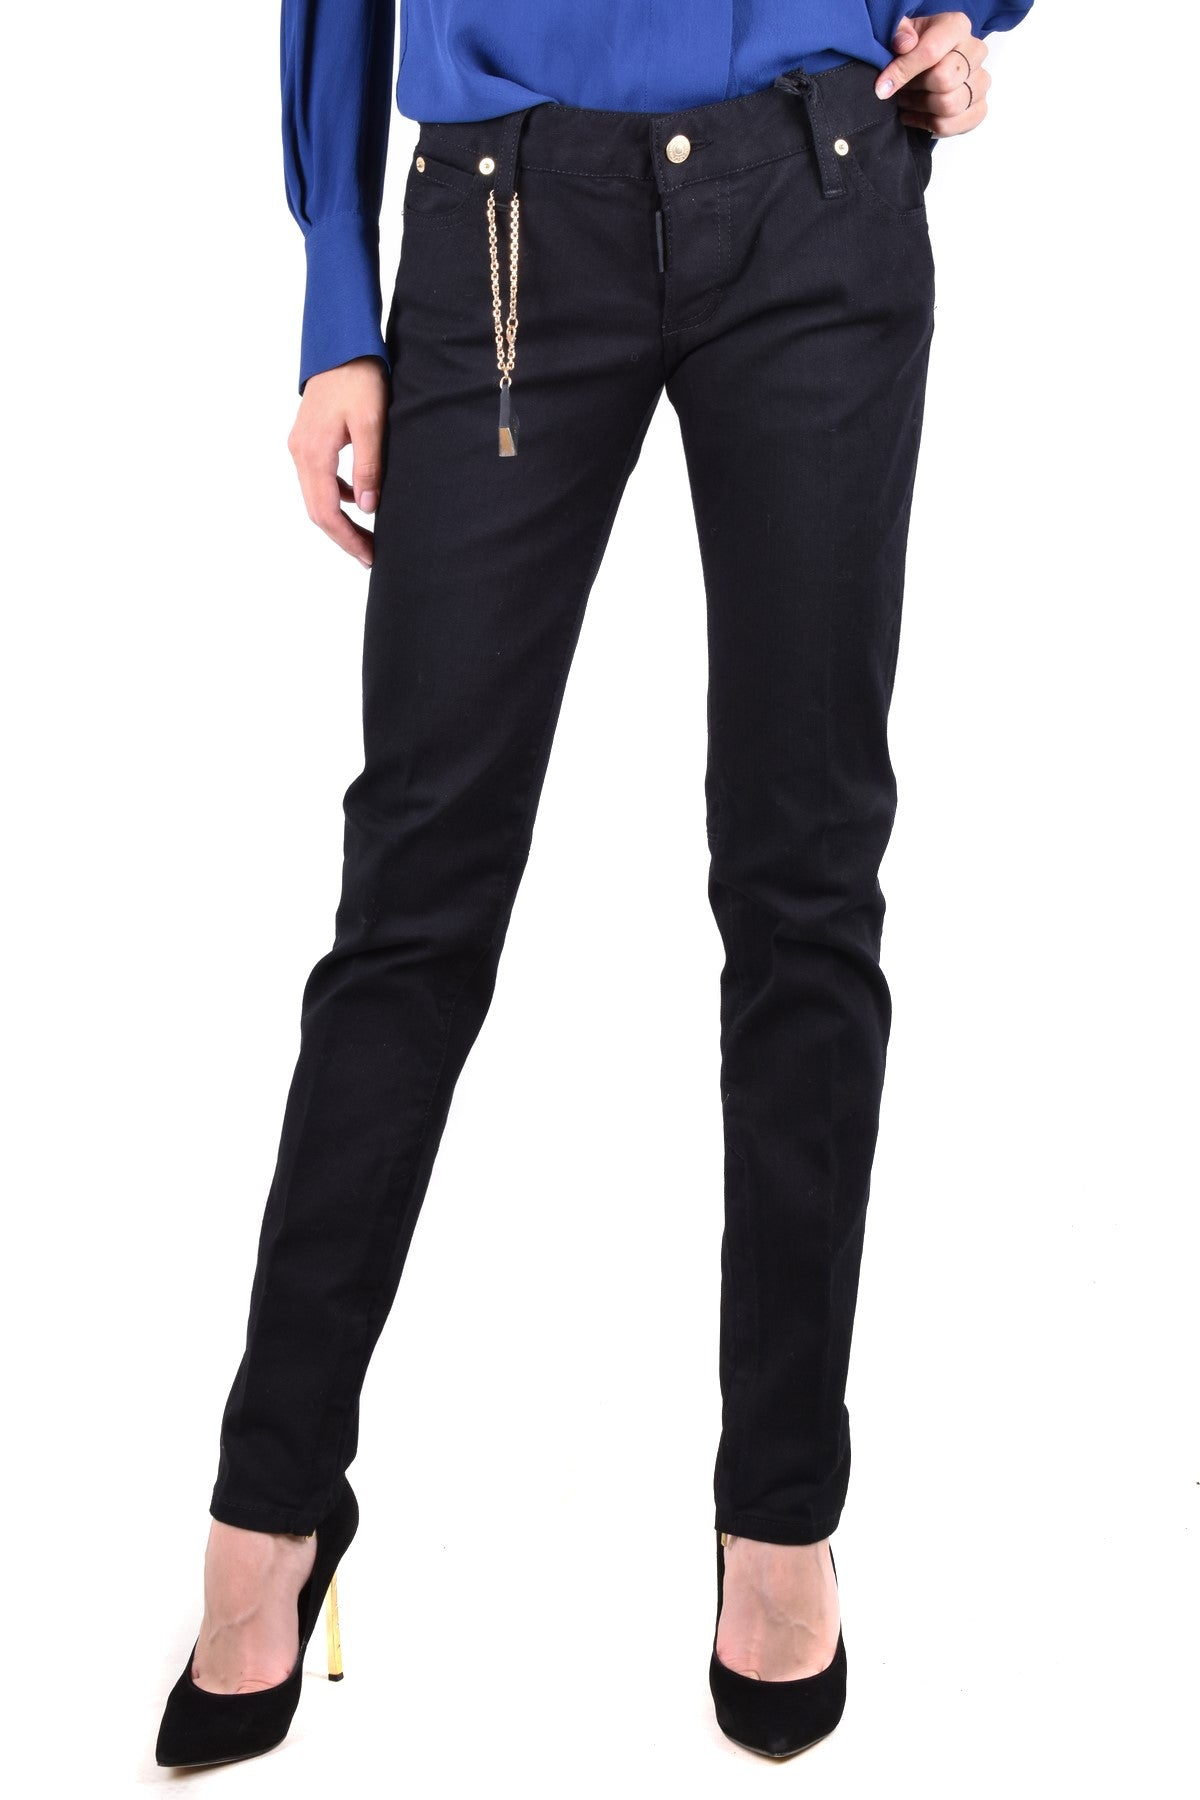 Jeans Dsquared-Women's Fashion - Women's Clothing - Jeans-Product Details Terms: New With LabelClothing Type: JeansMain Color: BlackSeason: Fall / WinterMade In: ItalyGender: WomanSize: ItComposition: Cotton 98%, Elastane 2%Year: 2020Manufacturer Part Number: S72La0365-Keyomi-Sook